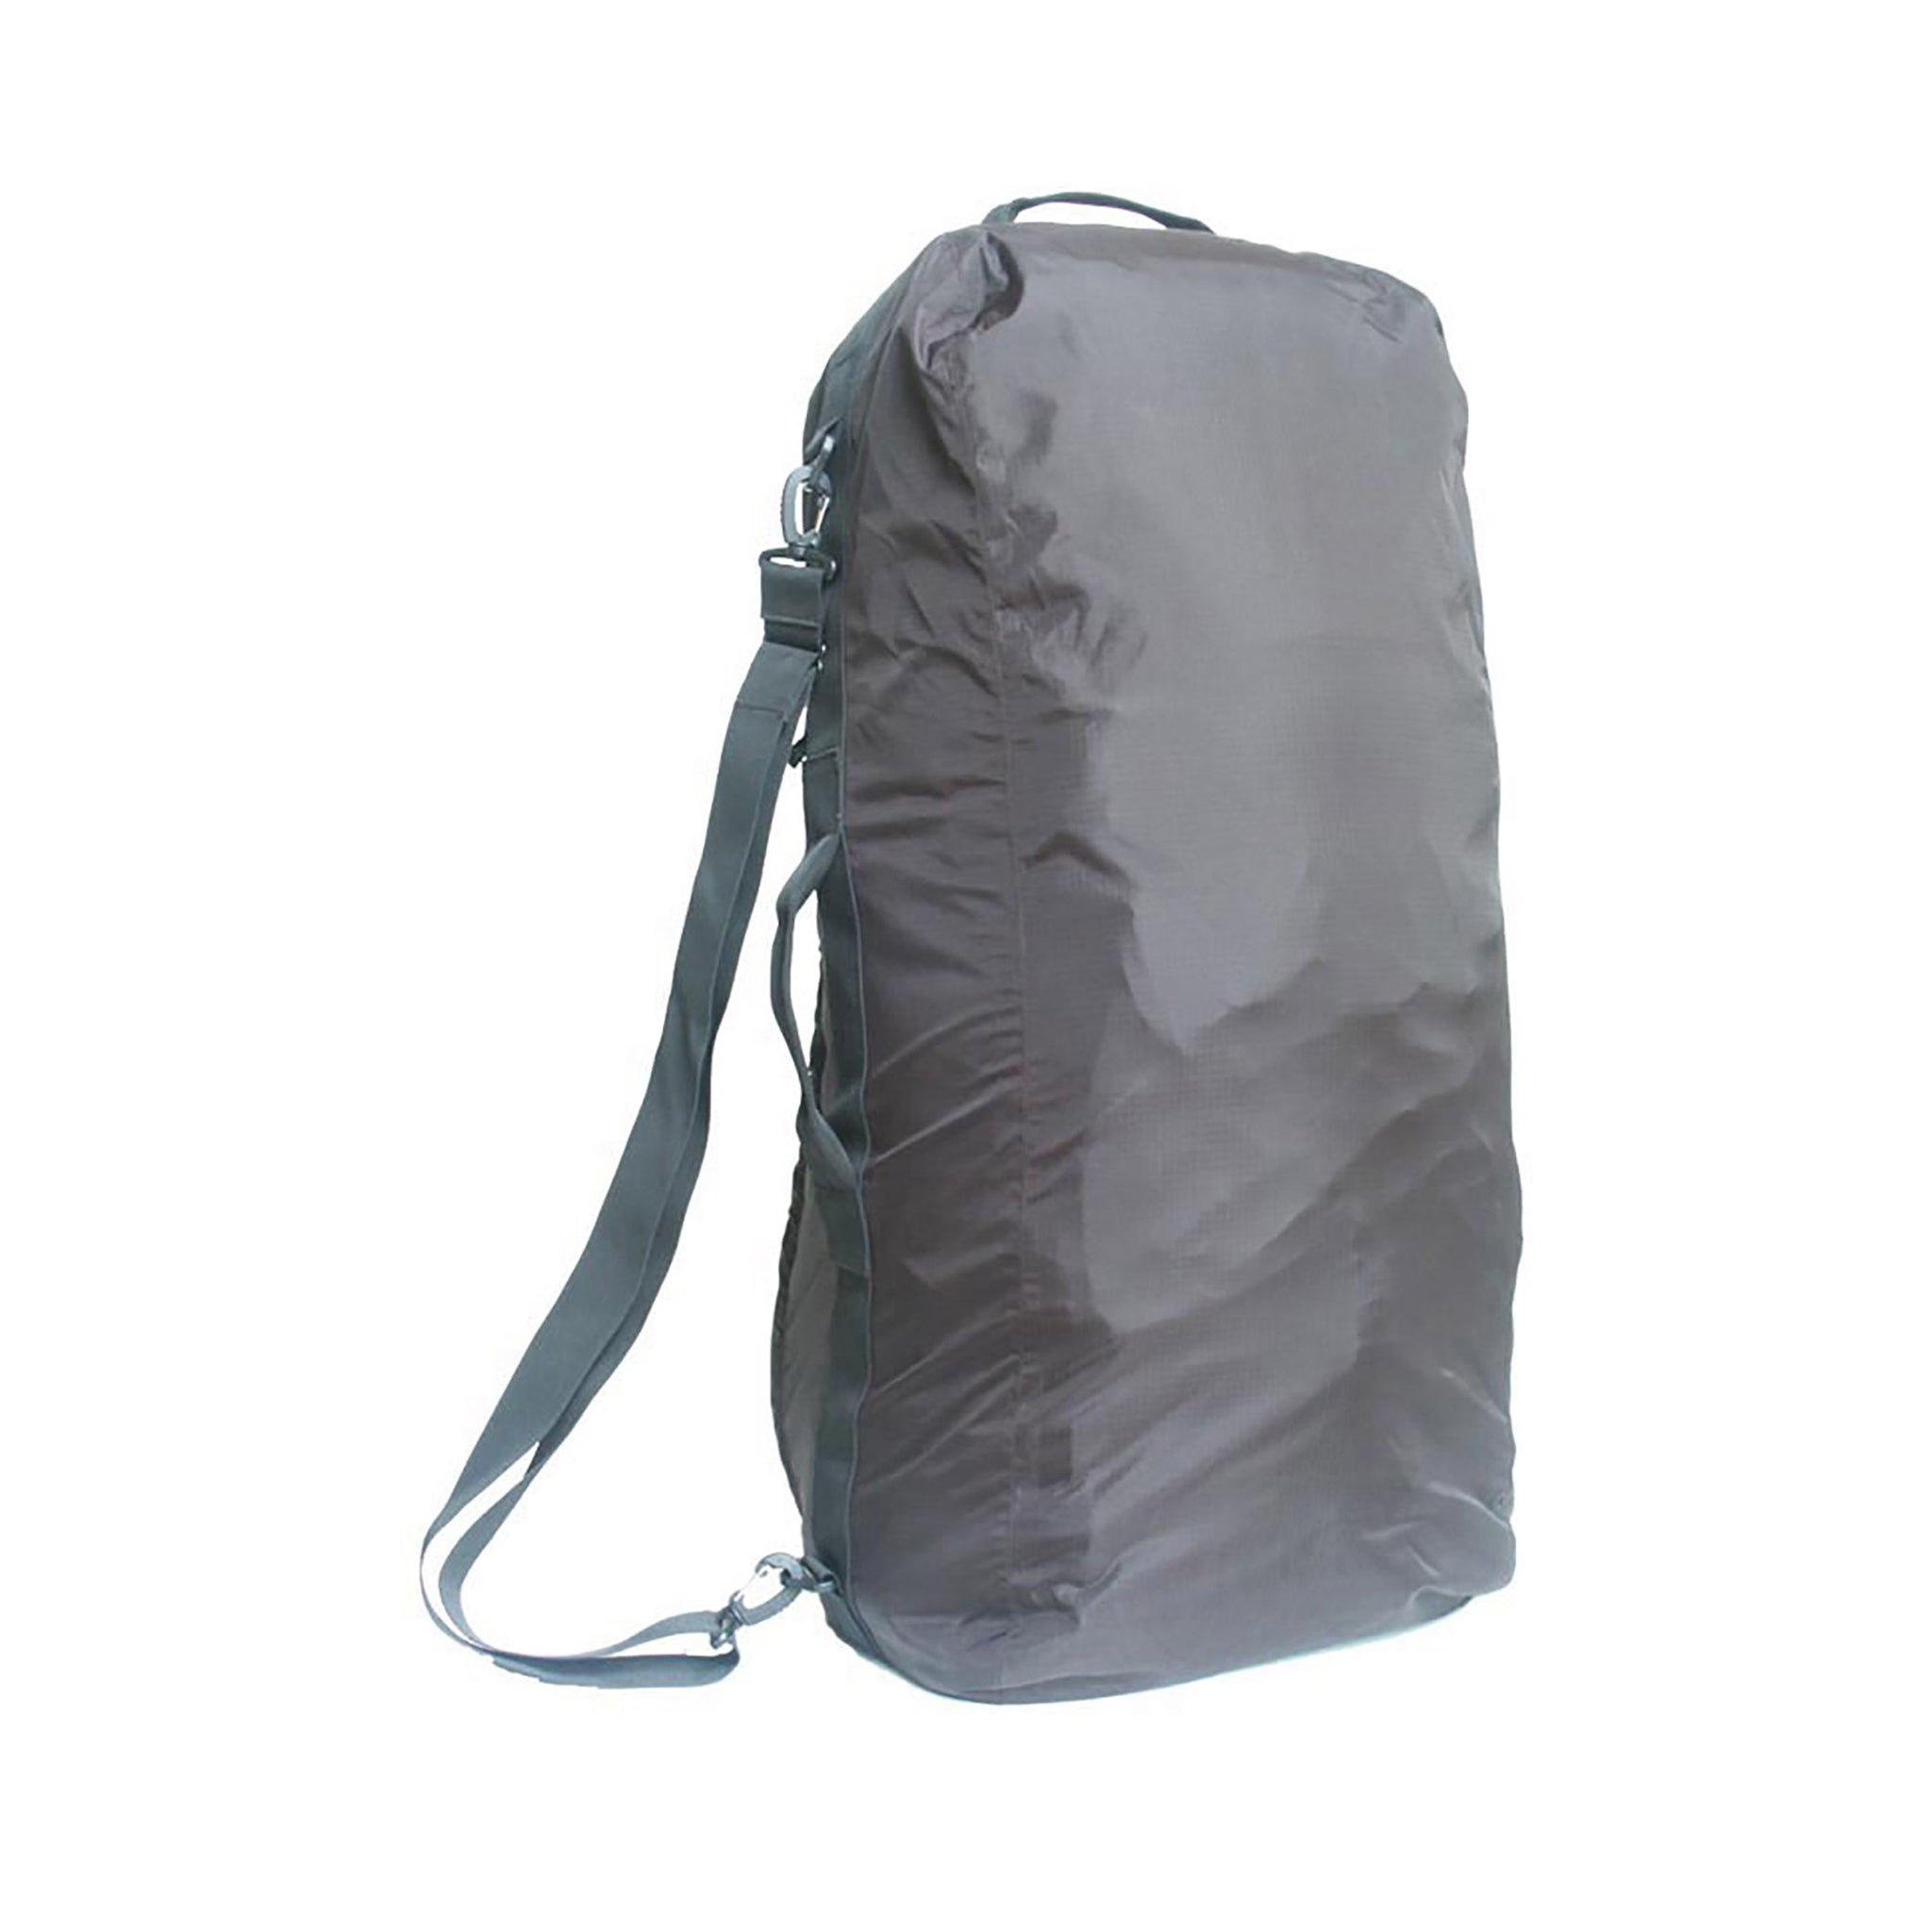 Sea to Summit Pack Converter: Backpack Duffle